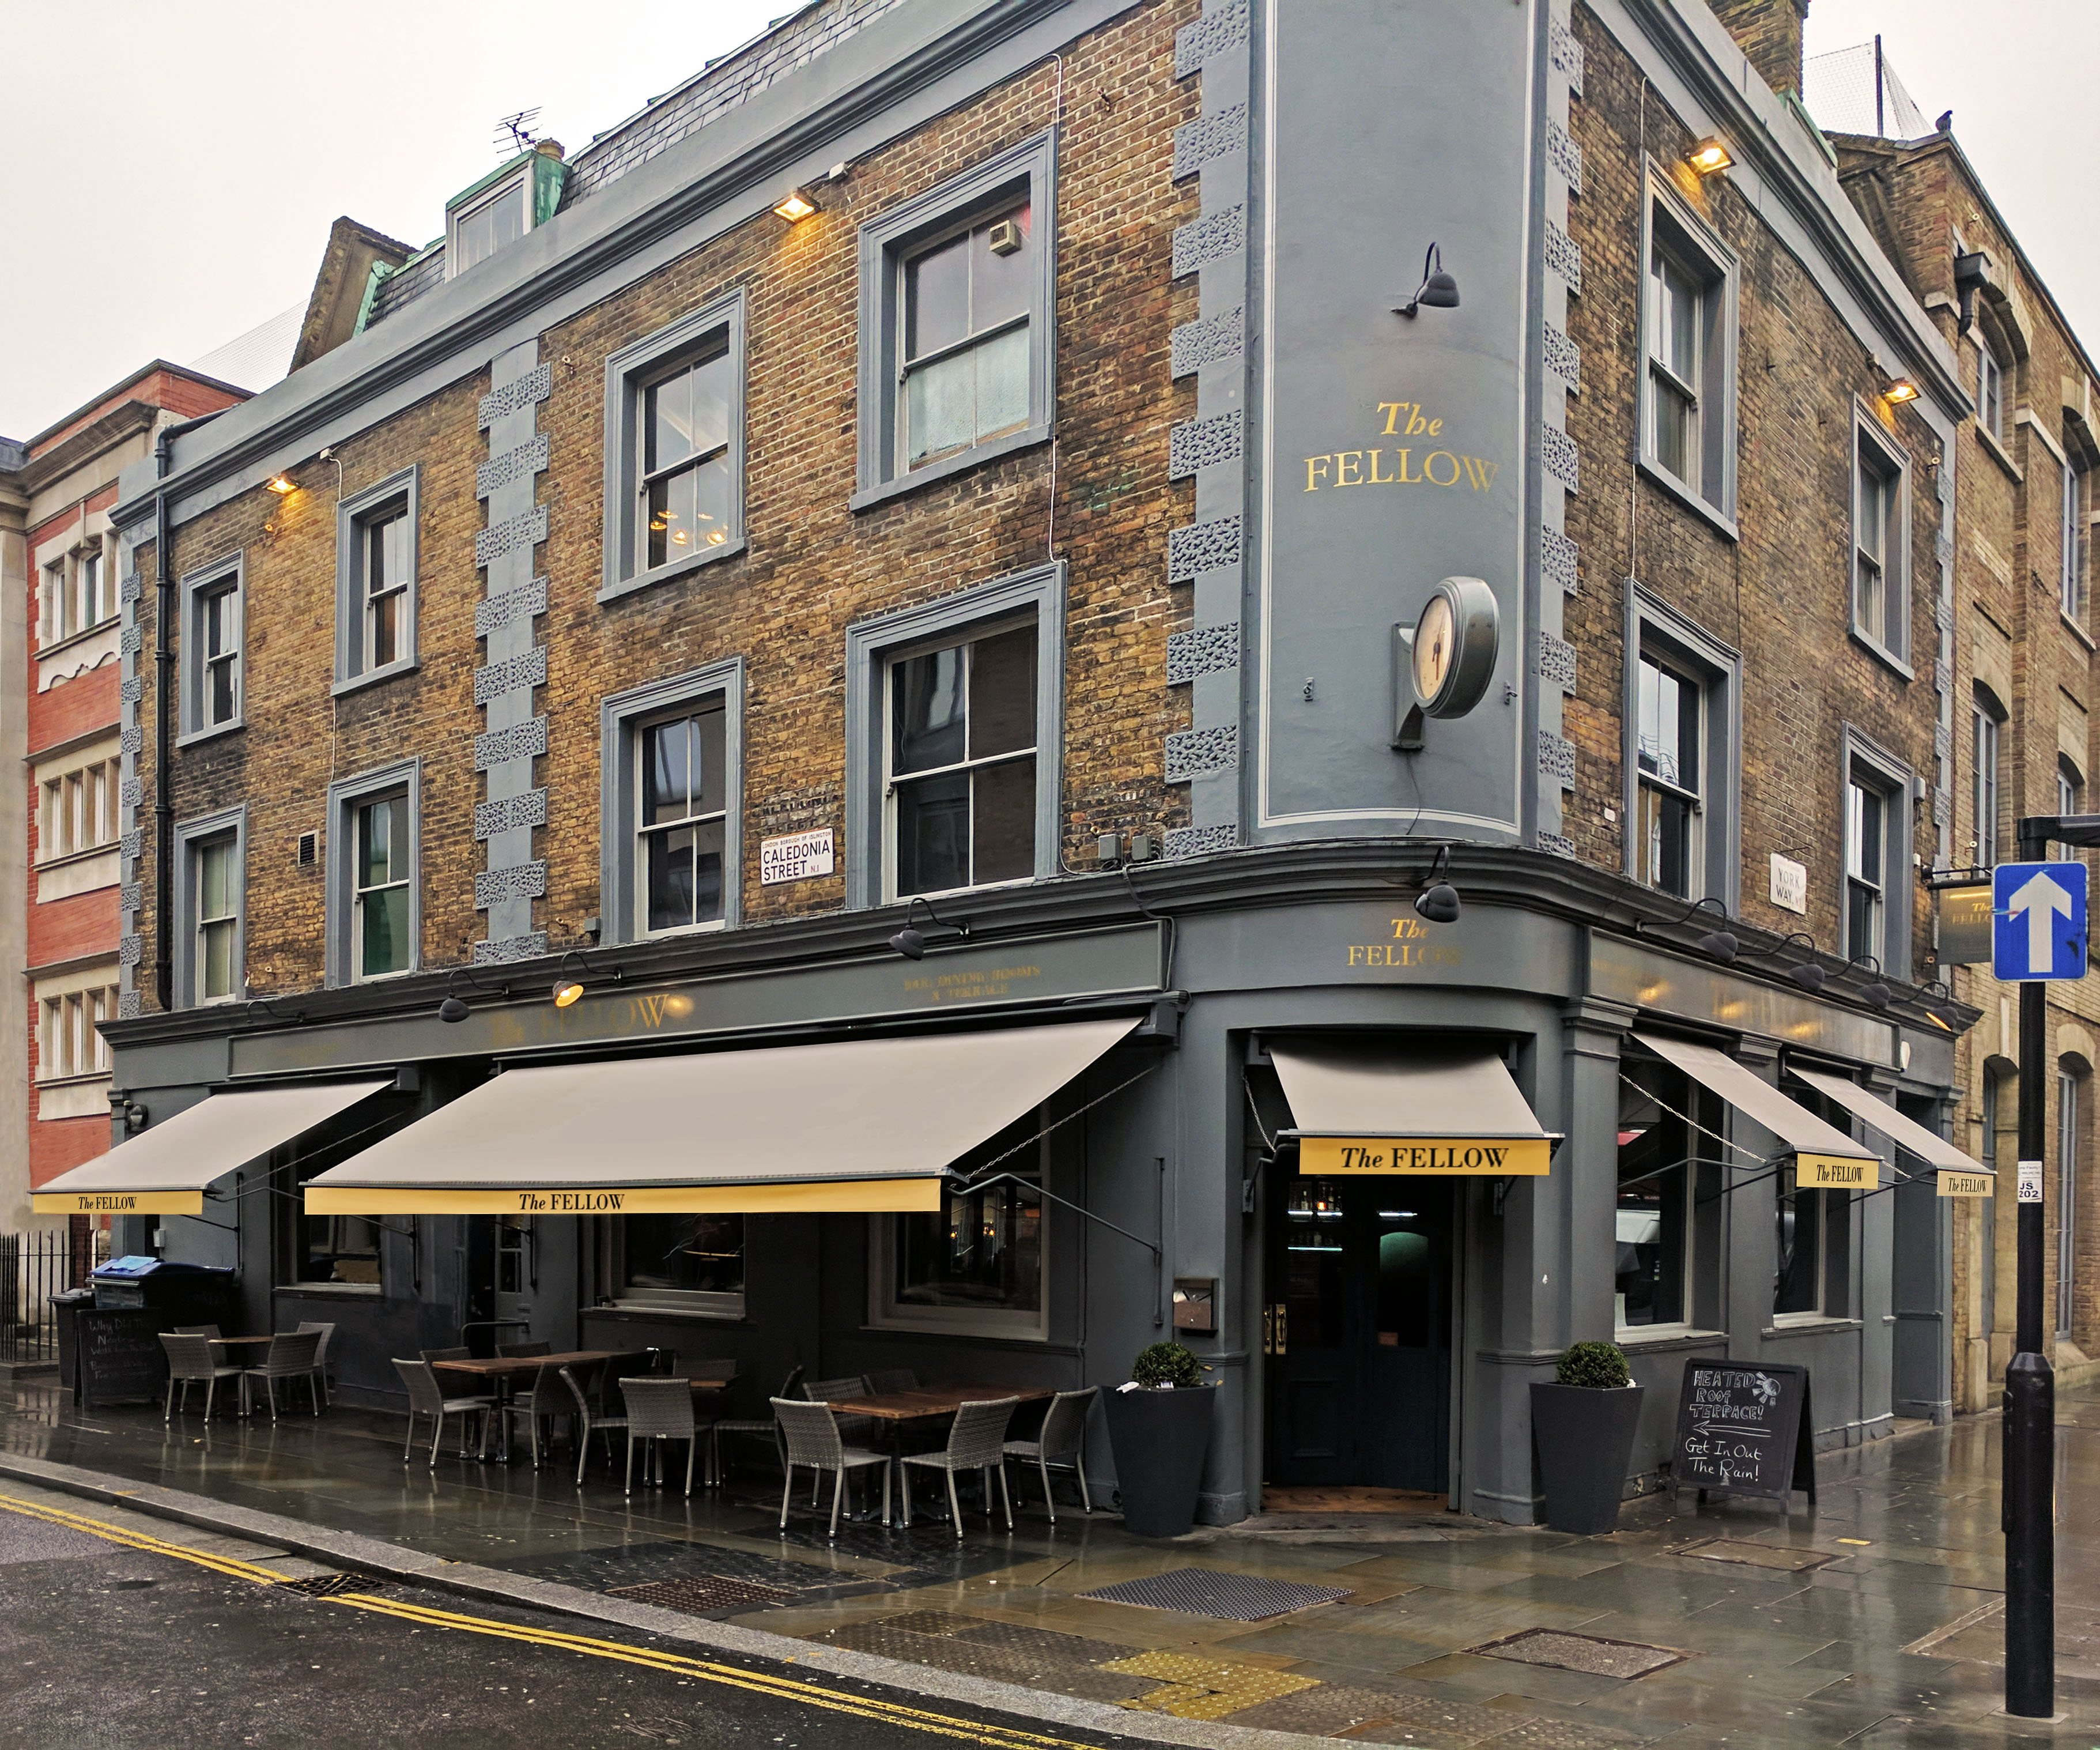 The fellow pub awnings